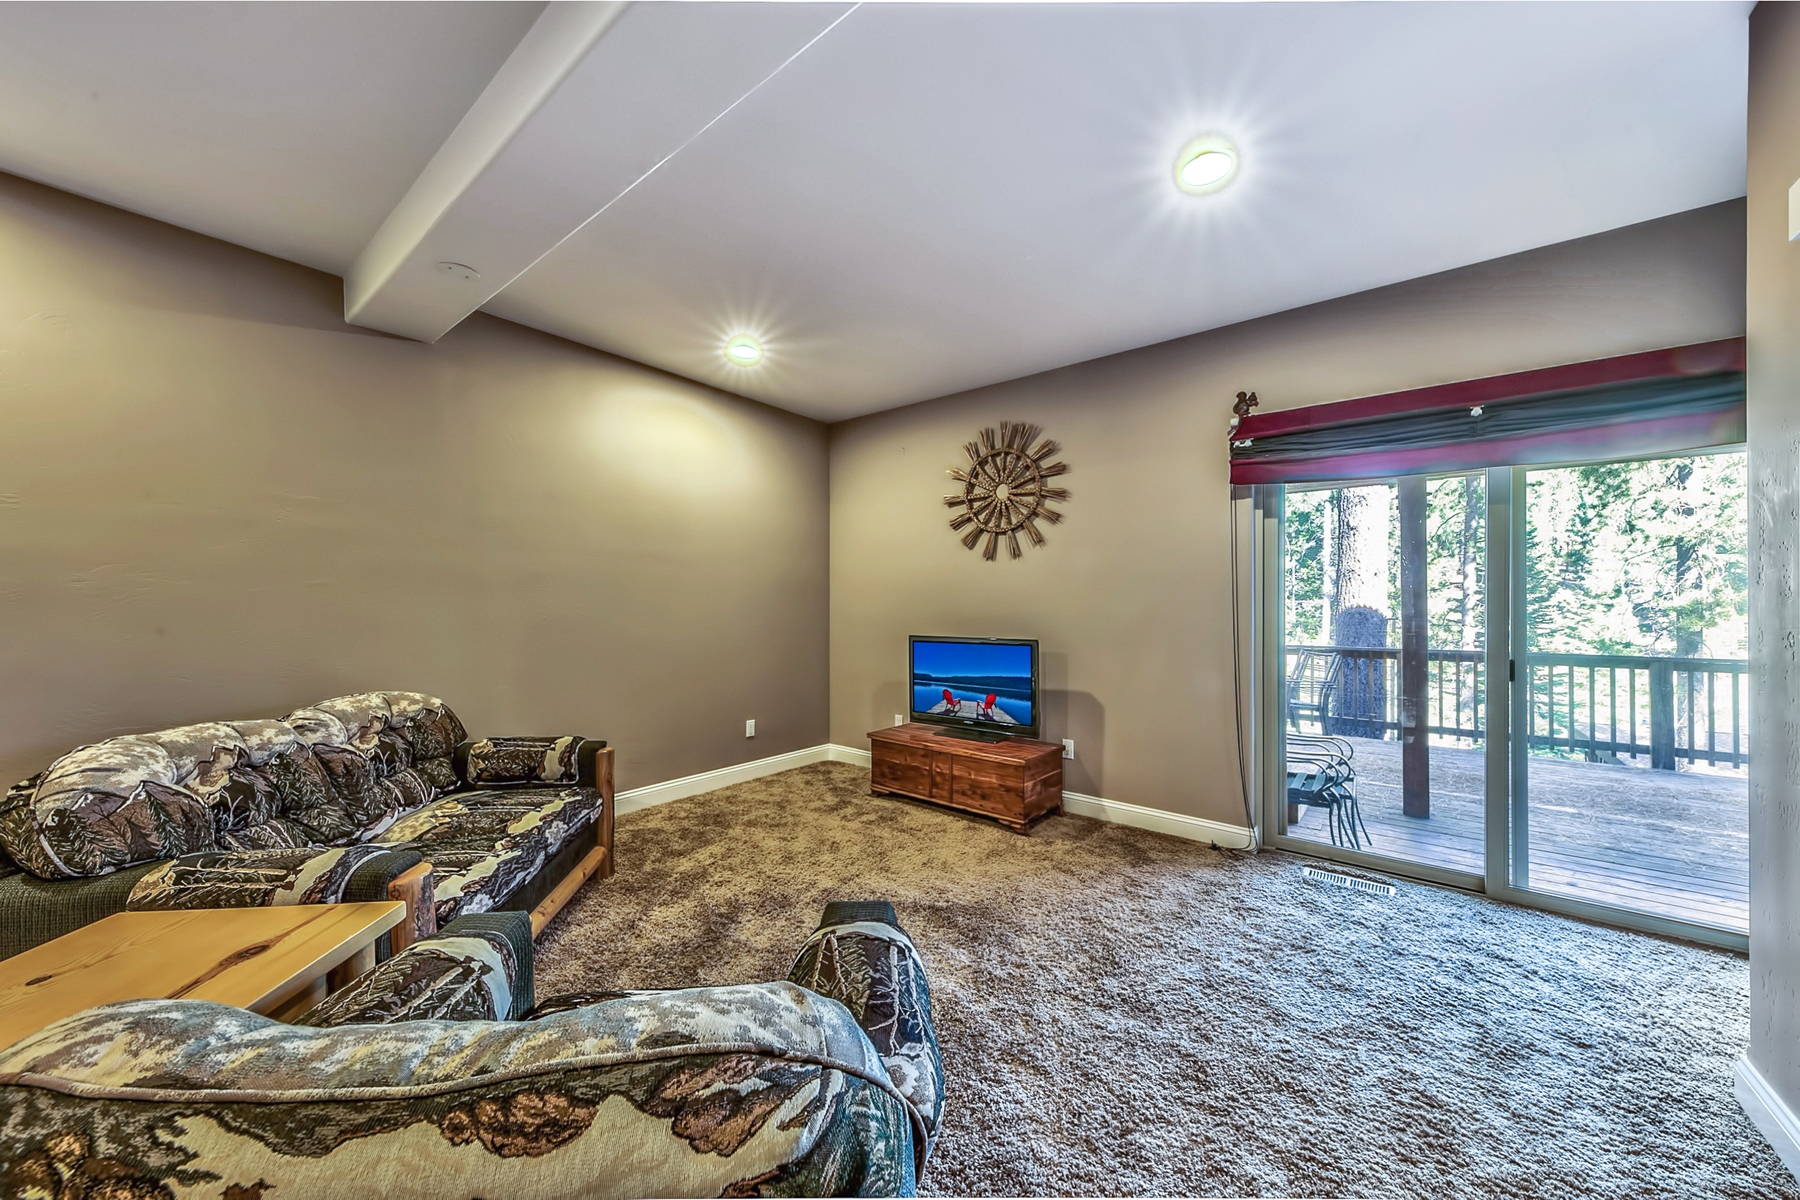 Additional photo for property listing at 1505 Cree Street, South Lake Tahoe, CA 1505 Cree Street South Lake Tahoe, California 96150 United States